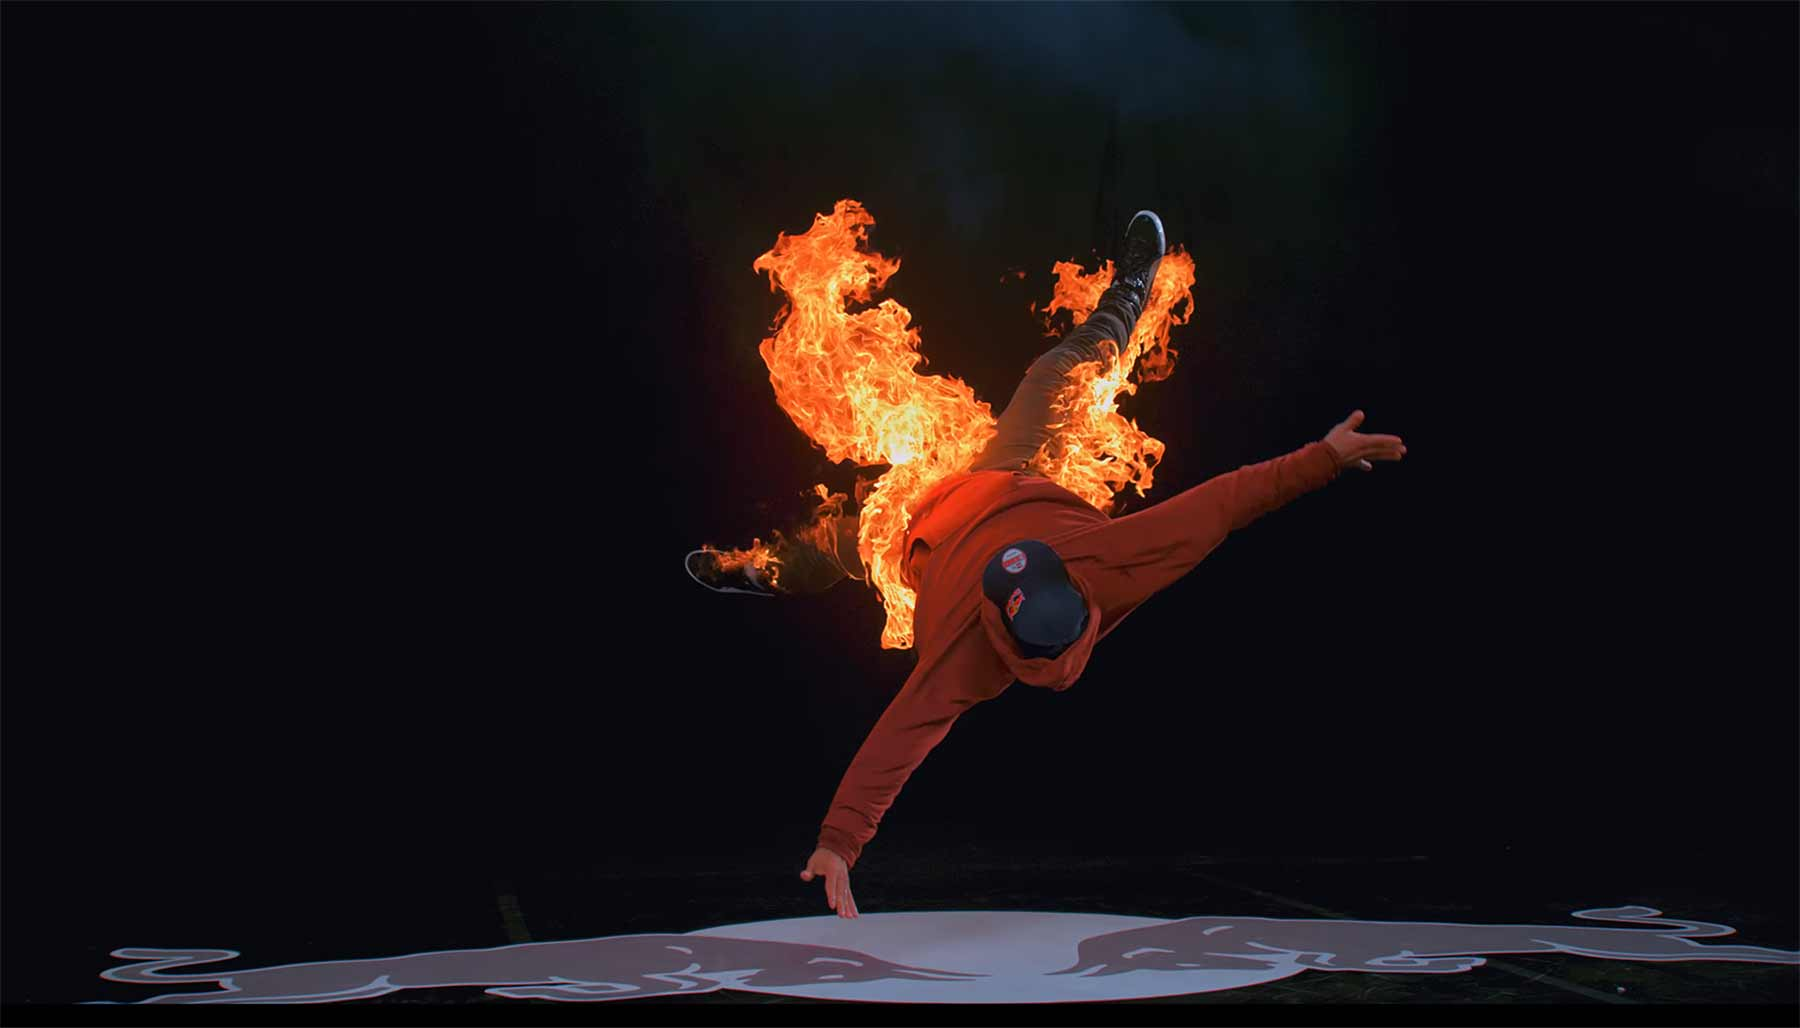 Breakdance-Battle: Water vs. Fire